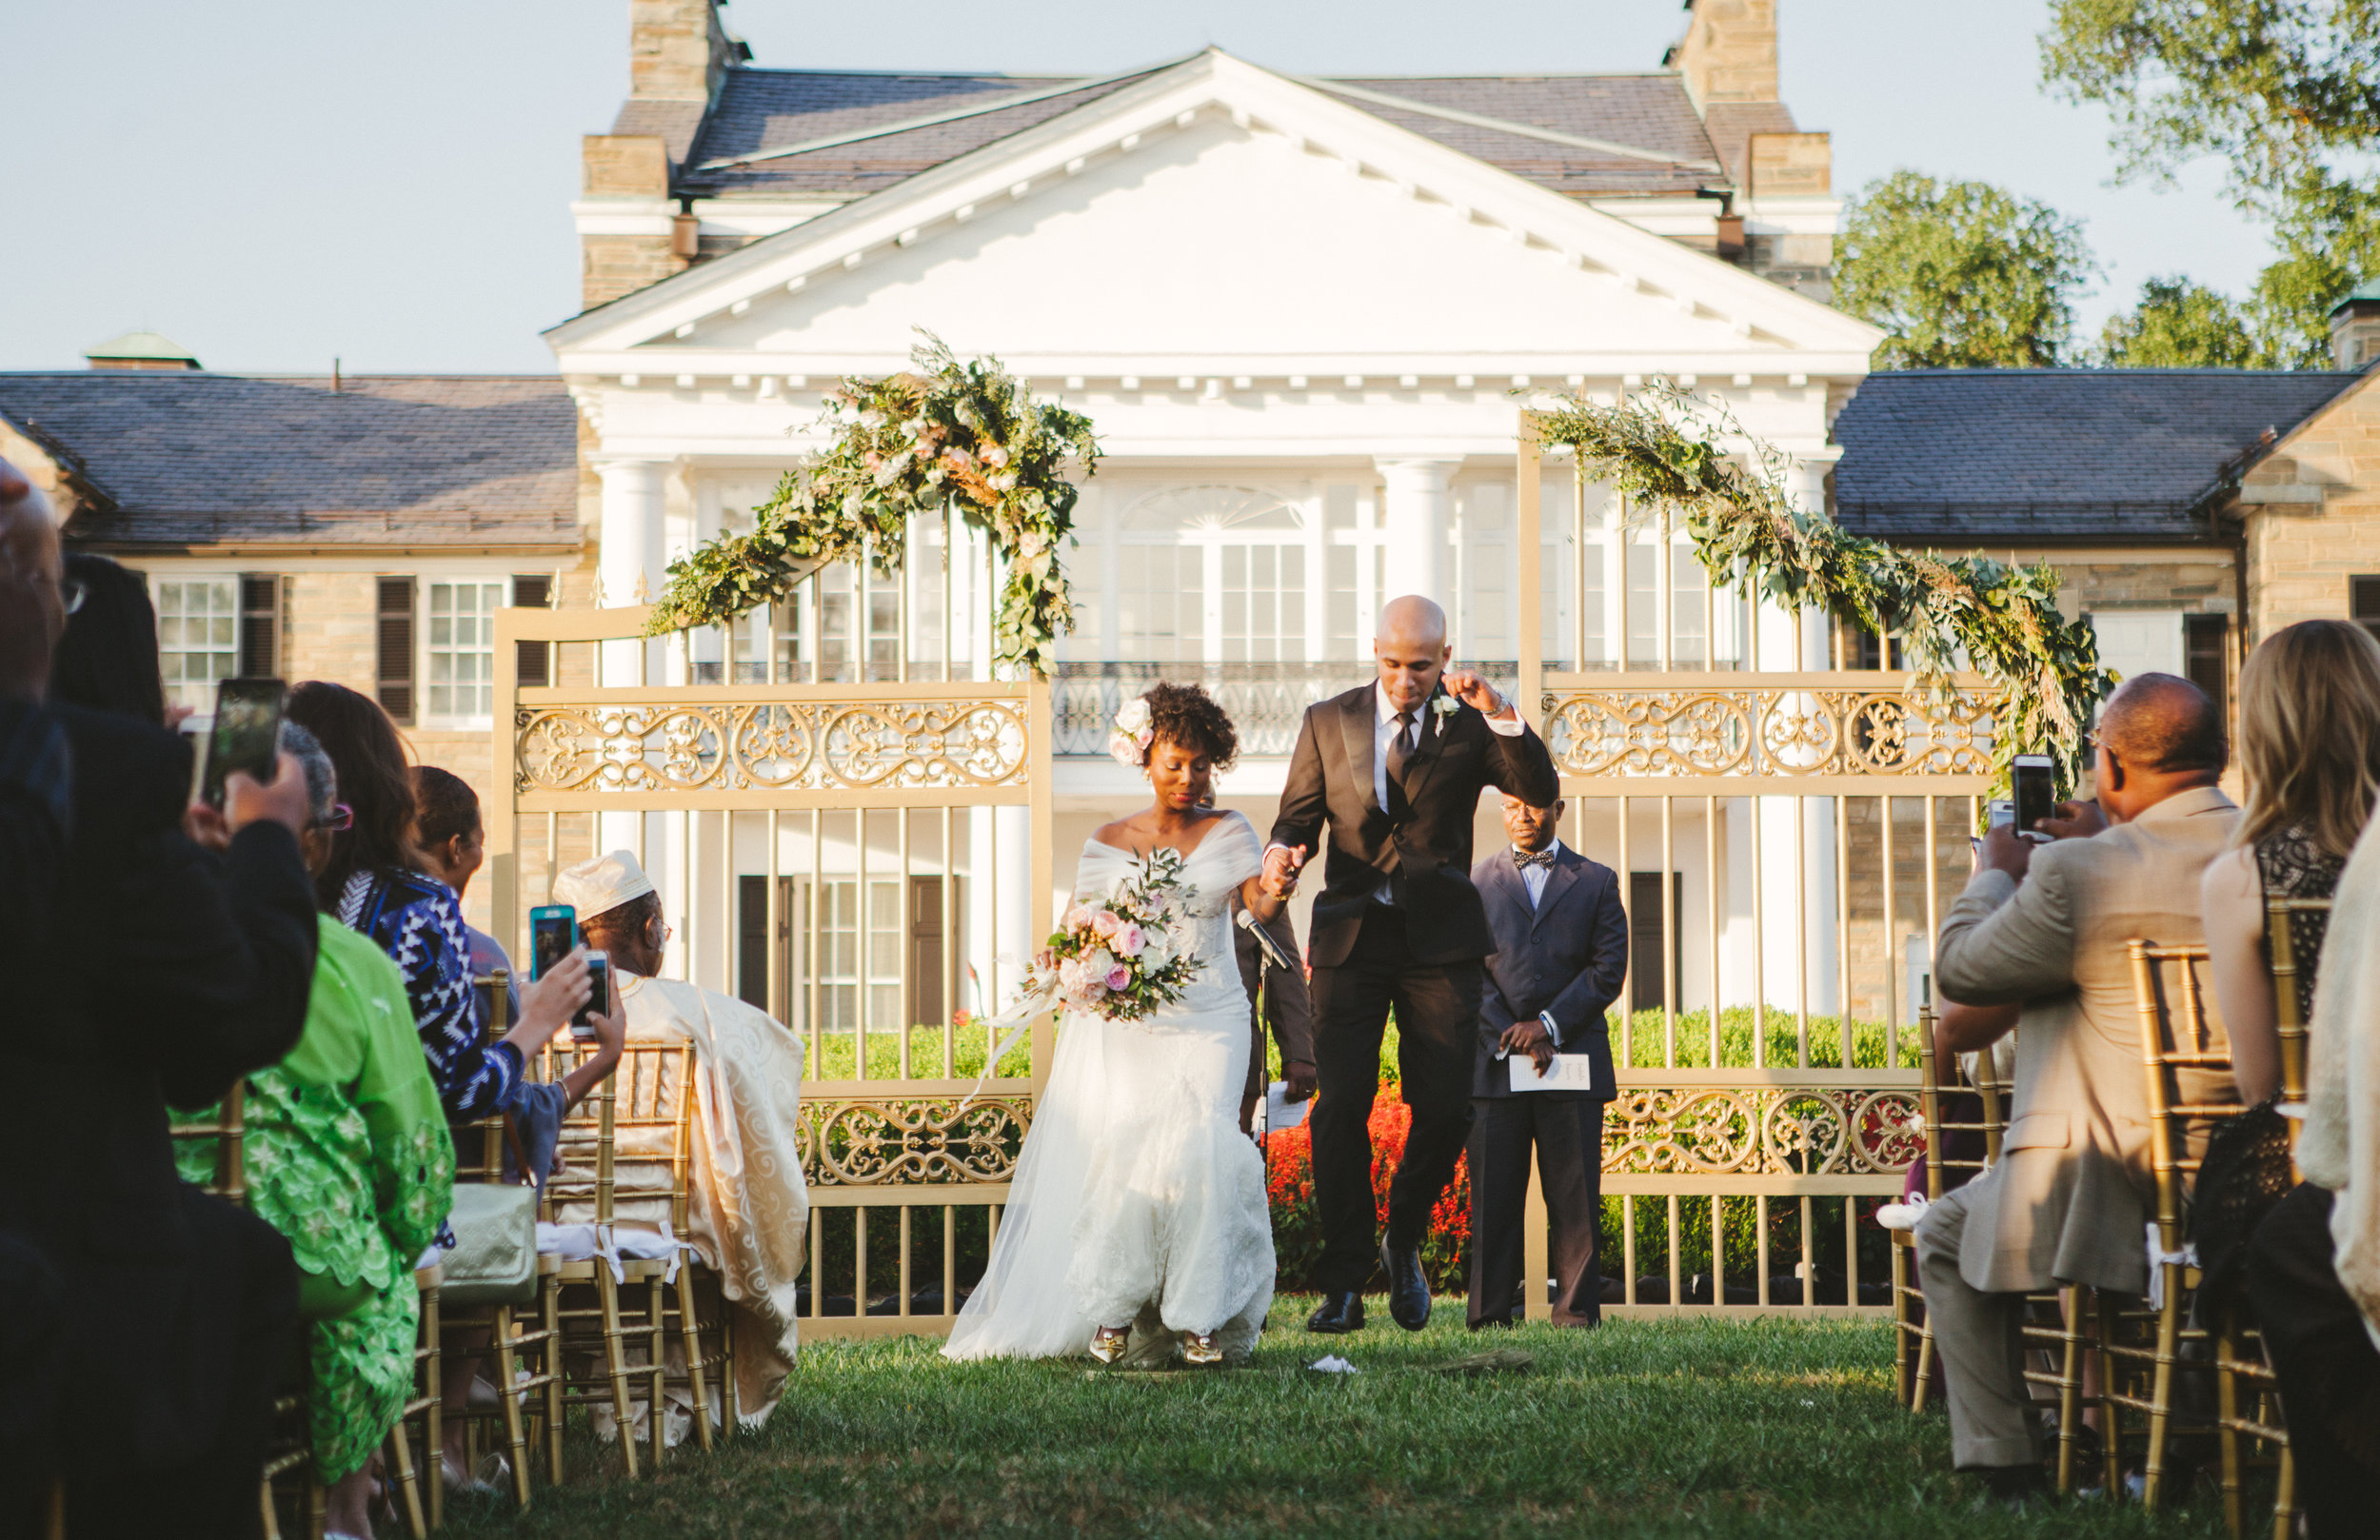 GLENVIEW MANSION WEDDING - INTIMATE WEDDING PHOTOGRAPHER - TWOTWENTY by CHI-CHI AGBIM-45.jpg